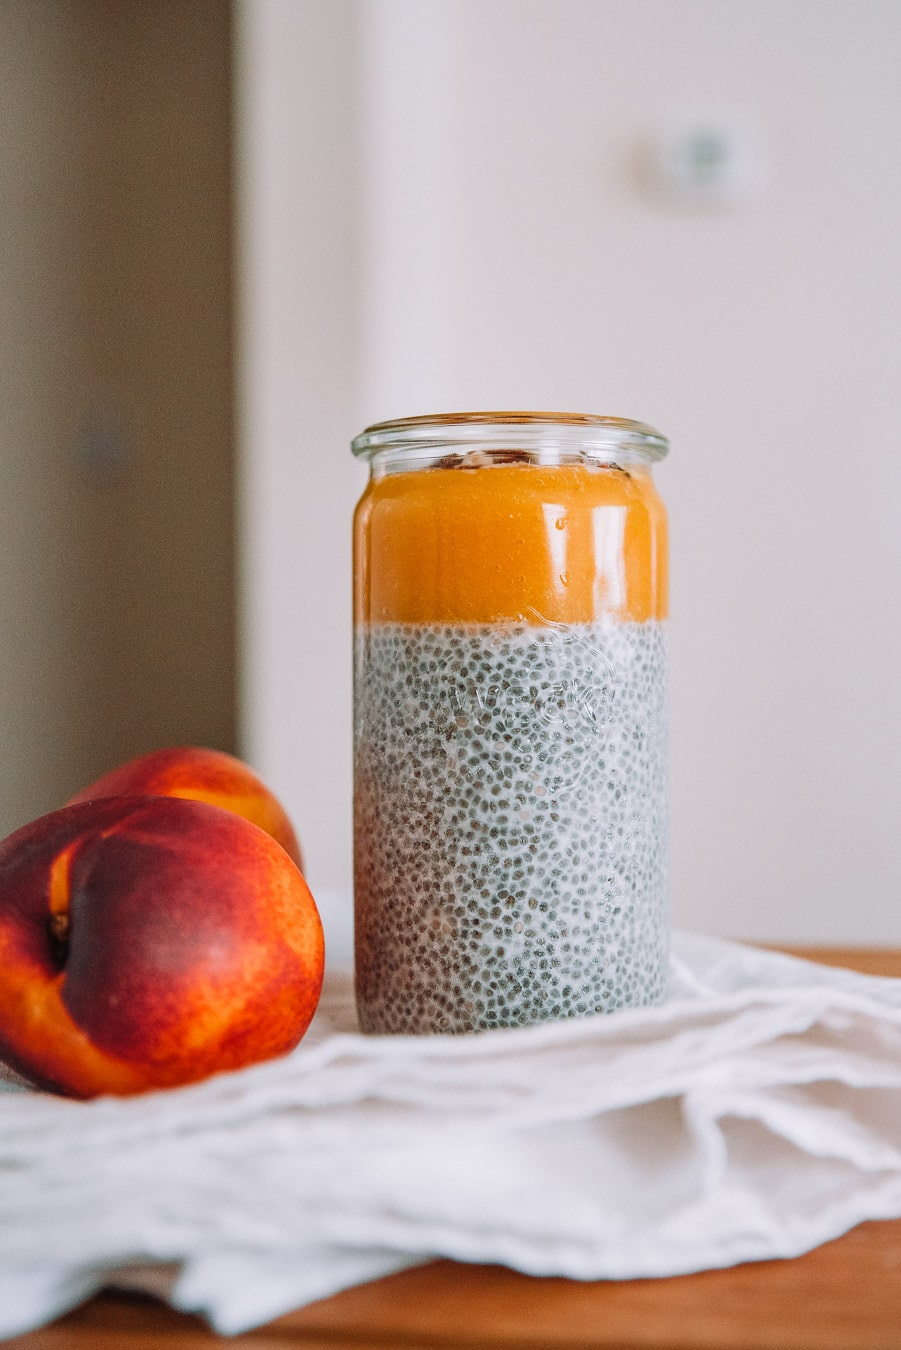 Jar of chia pudding with nectarines, a white table cloth, and wooden table.